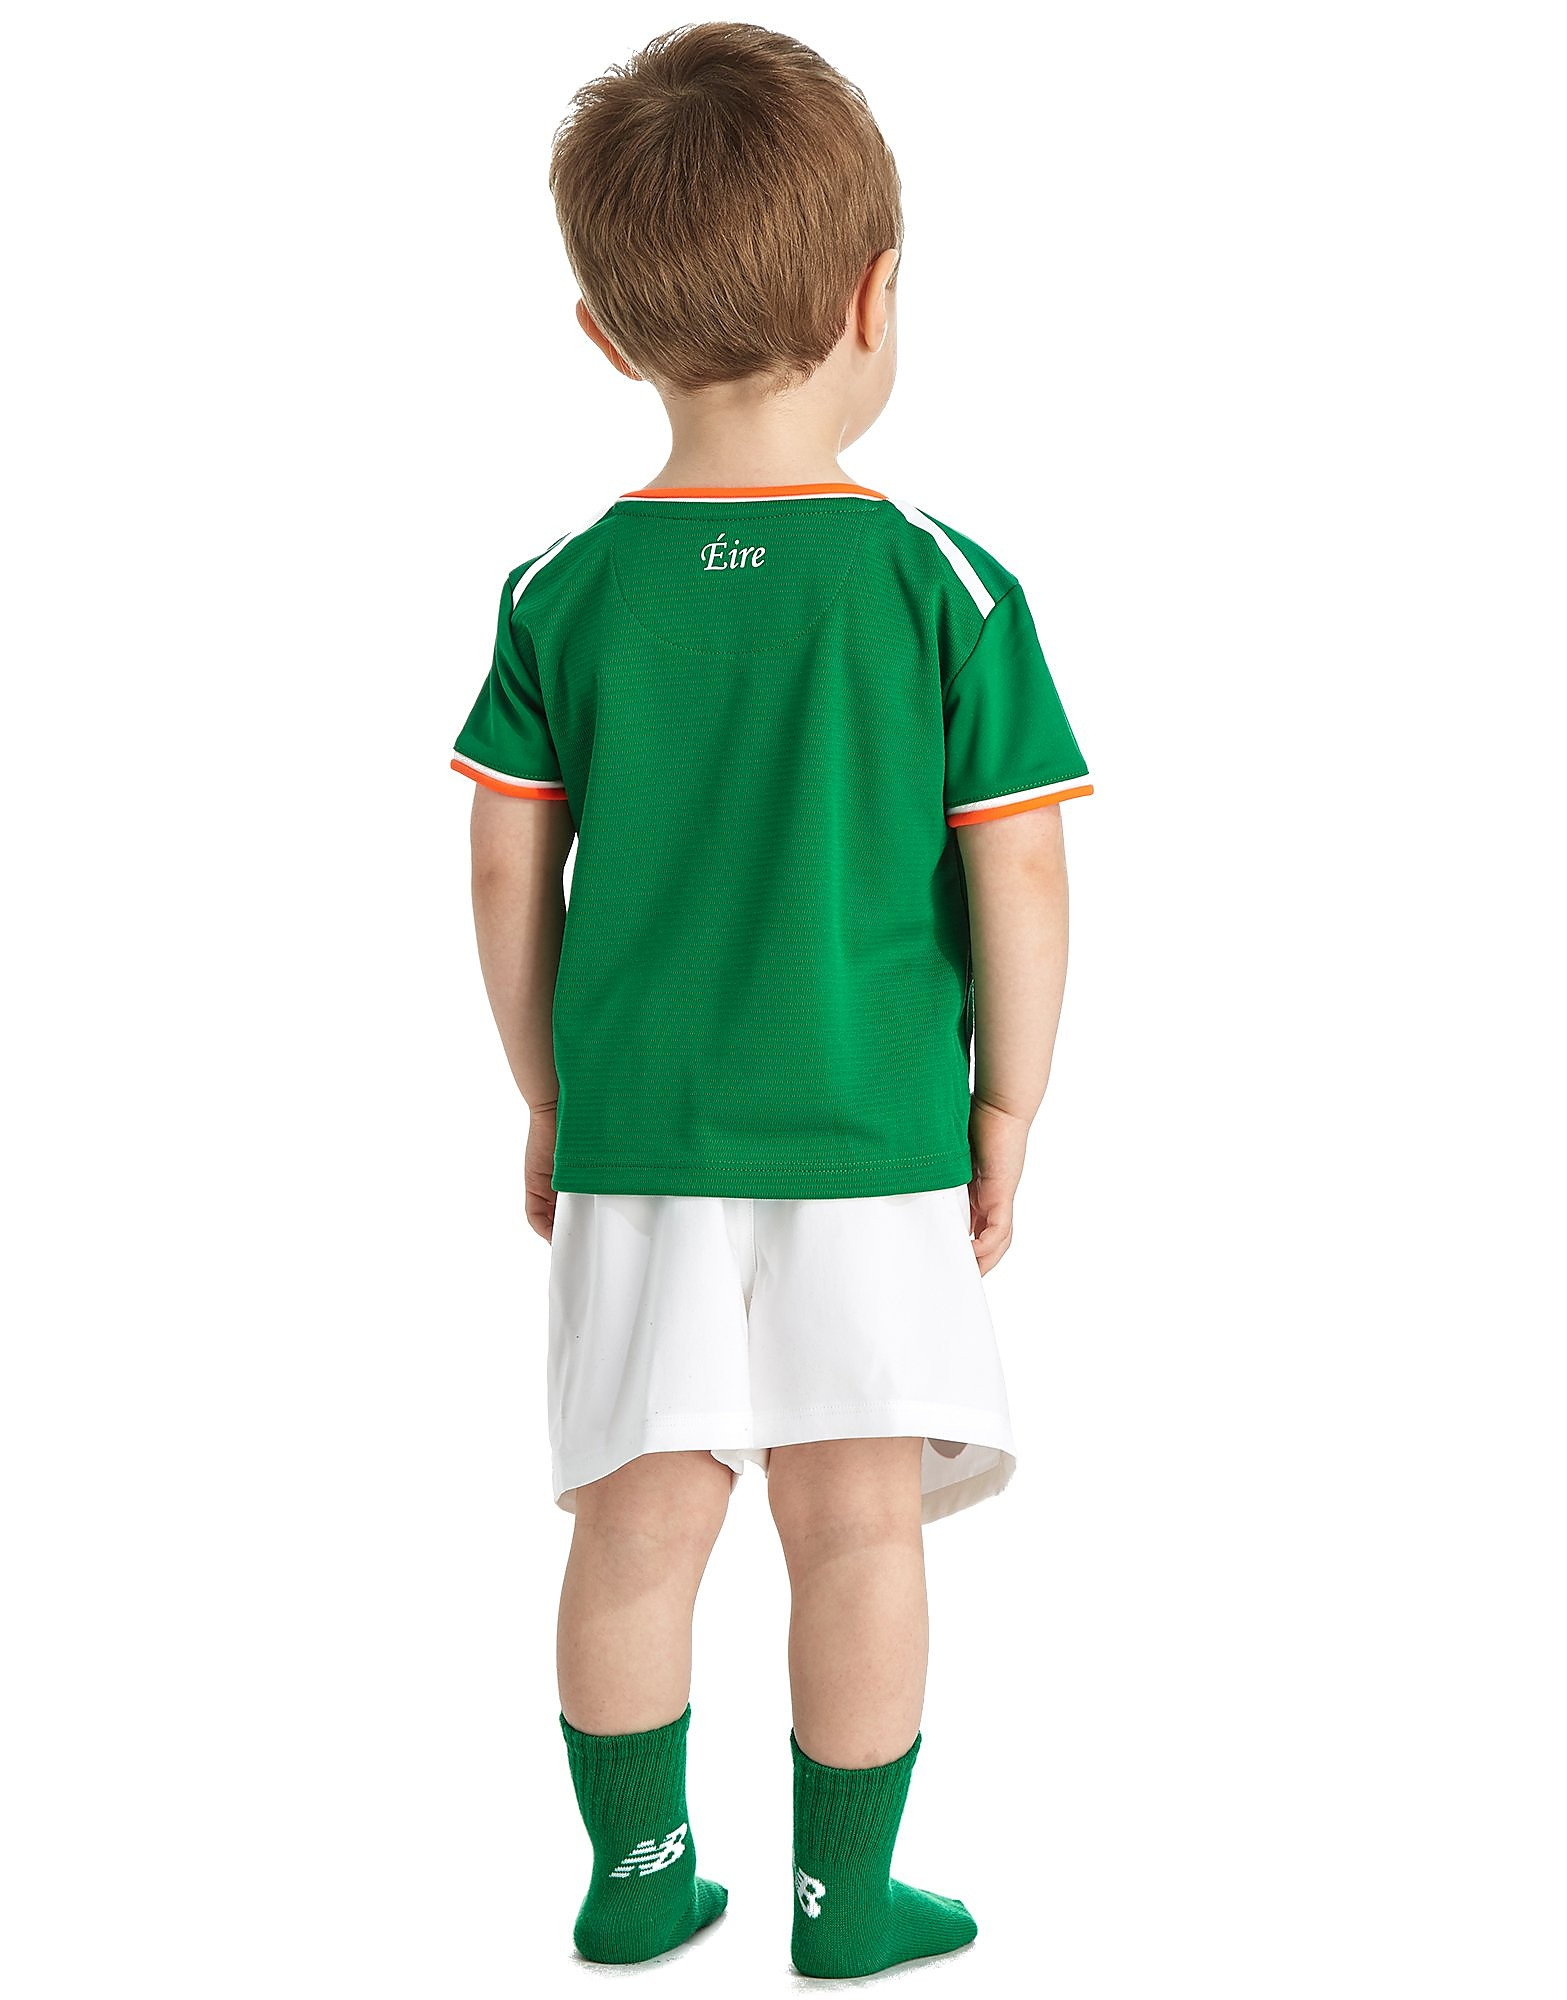 New Balance Republic of Ireland 2017/18 Home Kit Infant